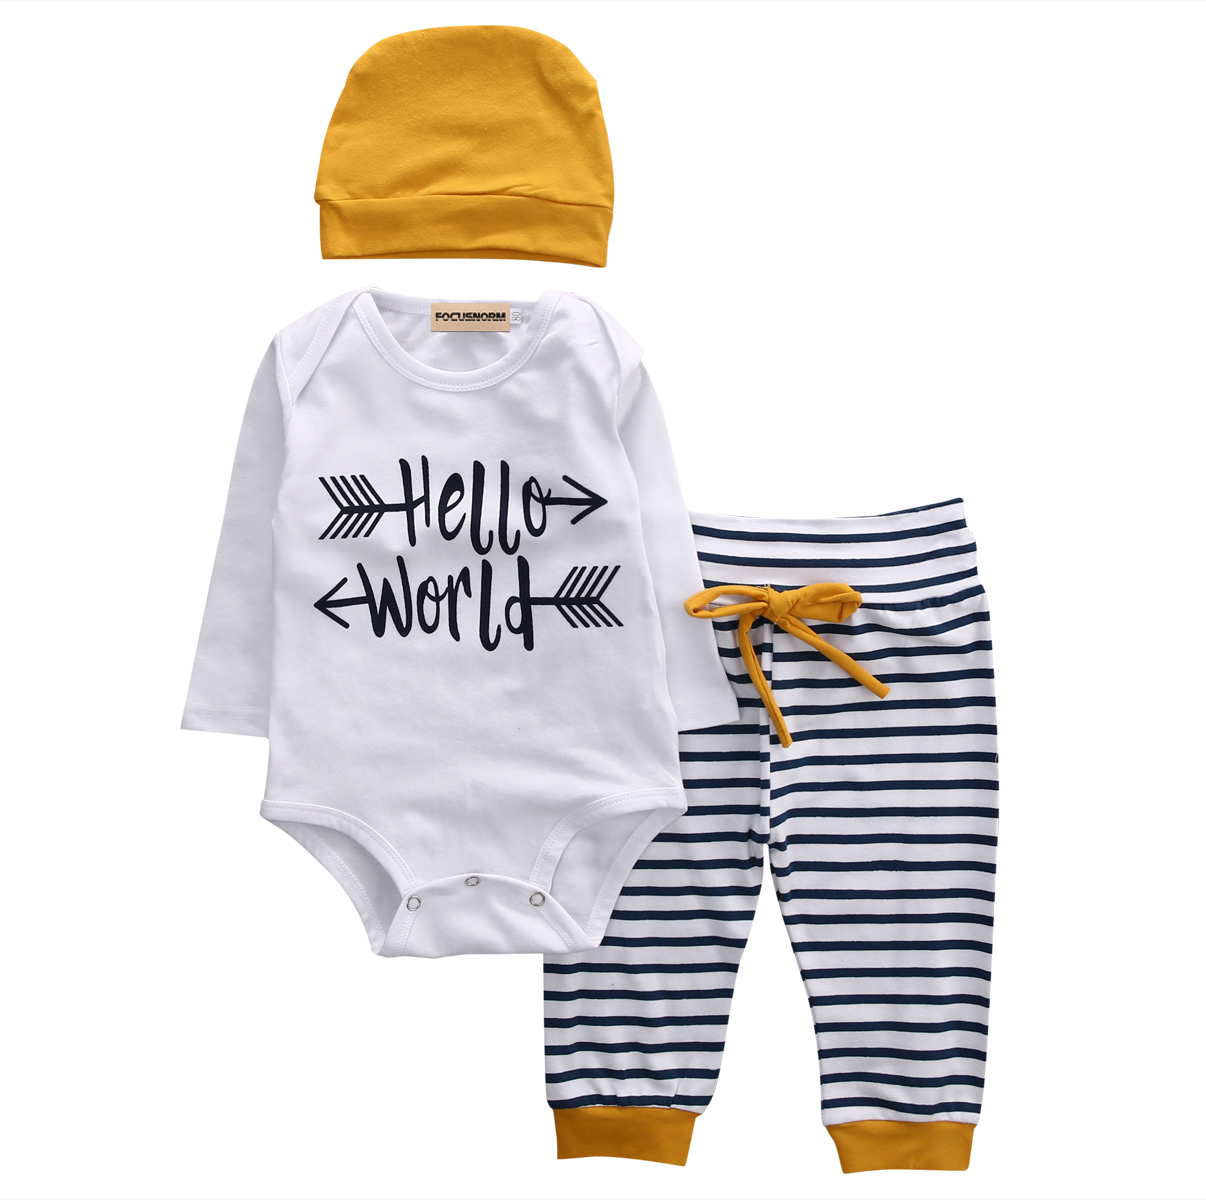 3Pcs Infant Baby Boys Letter Printed Tops+Striped Pants +Beanie Hats Long Sleeves Cotton Outfit Set Clothes